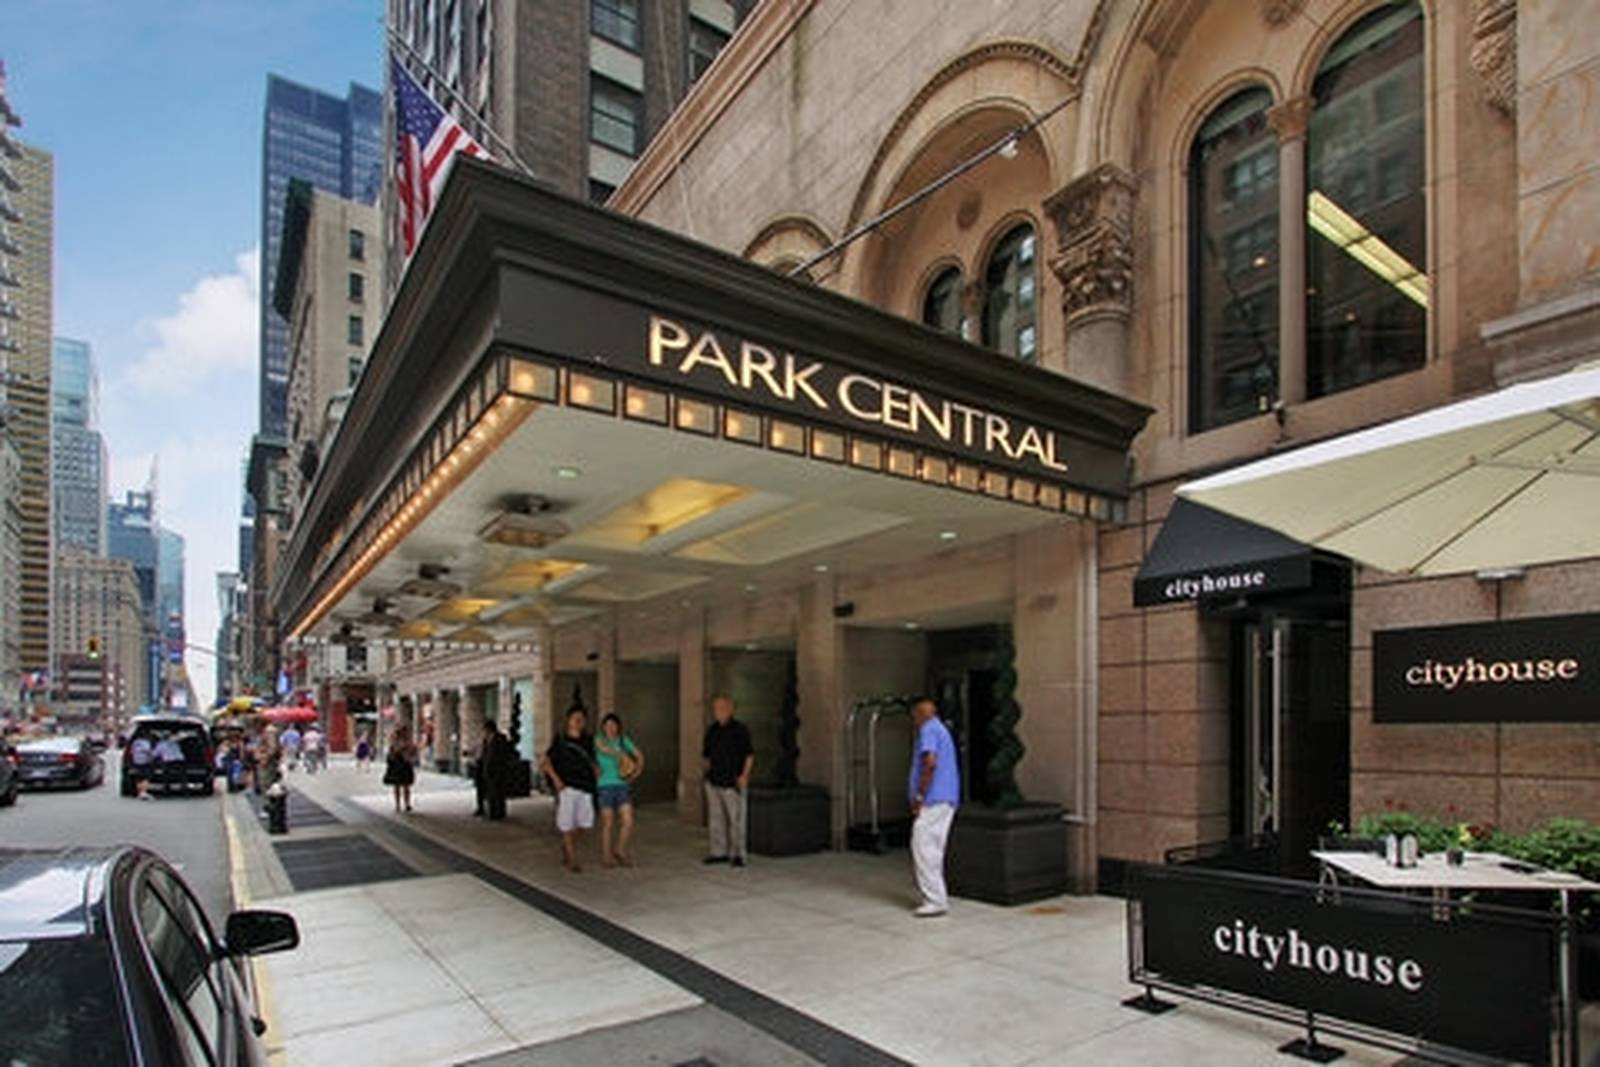 10 Best Hotels Closest to Central Park in New York for ...